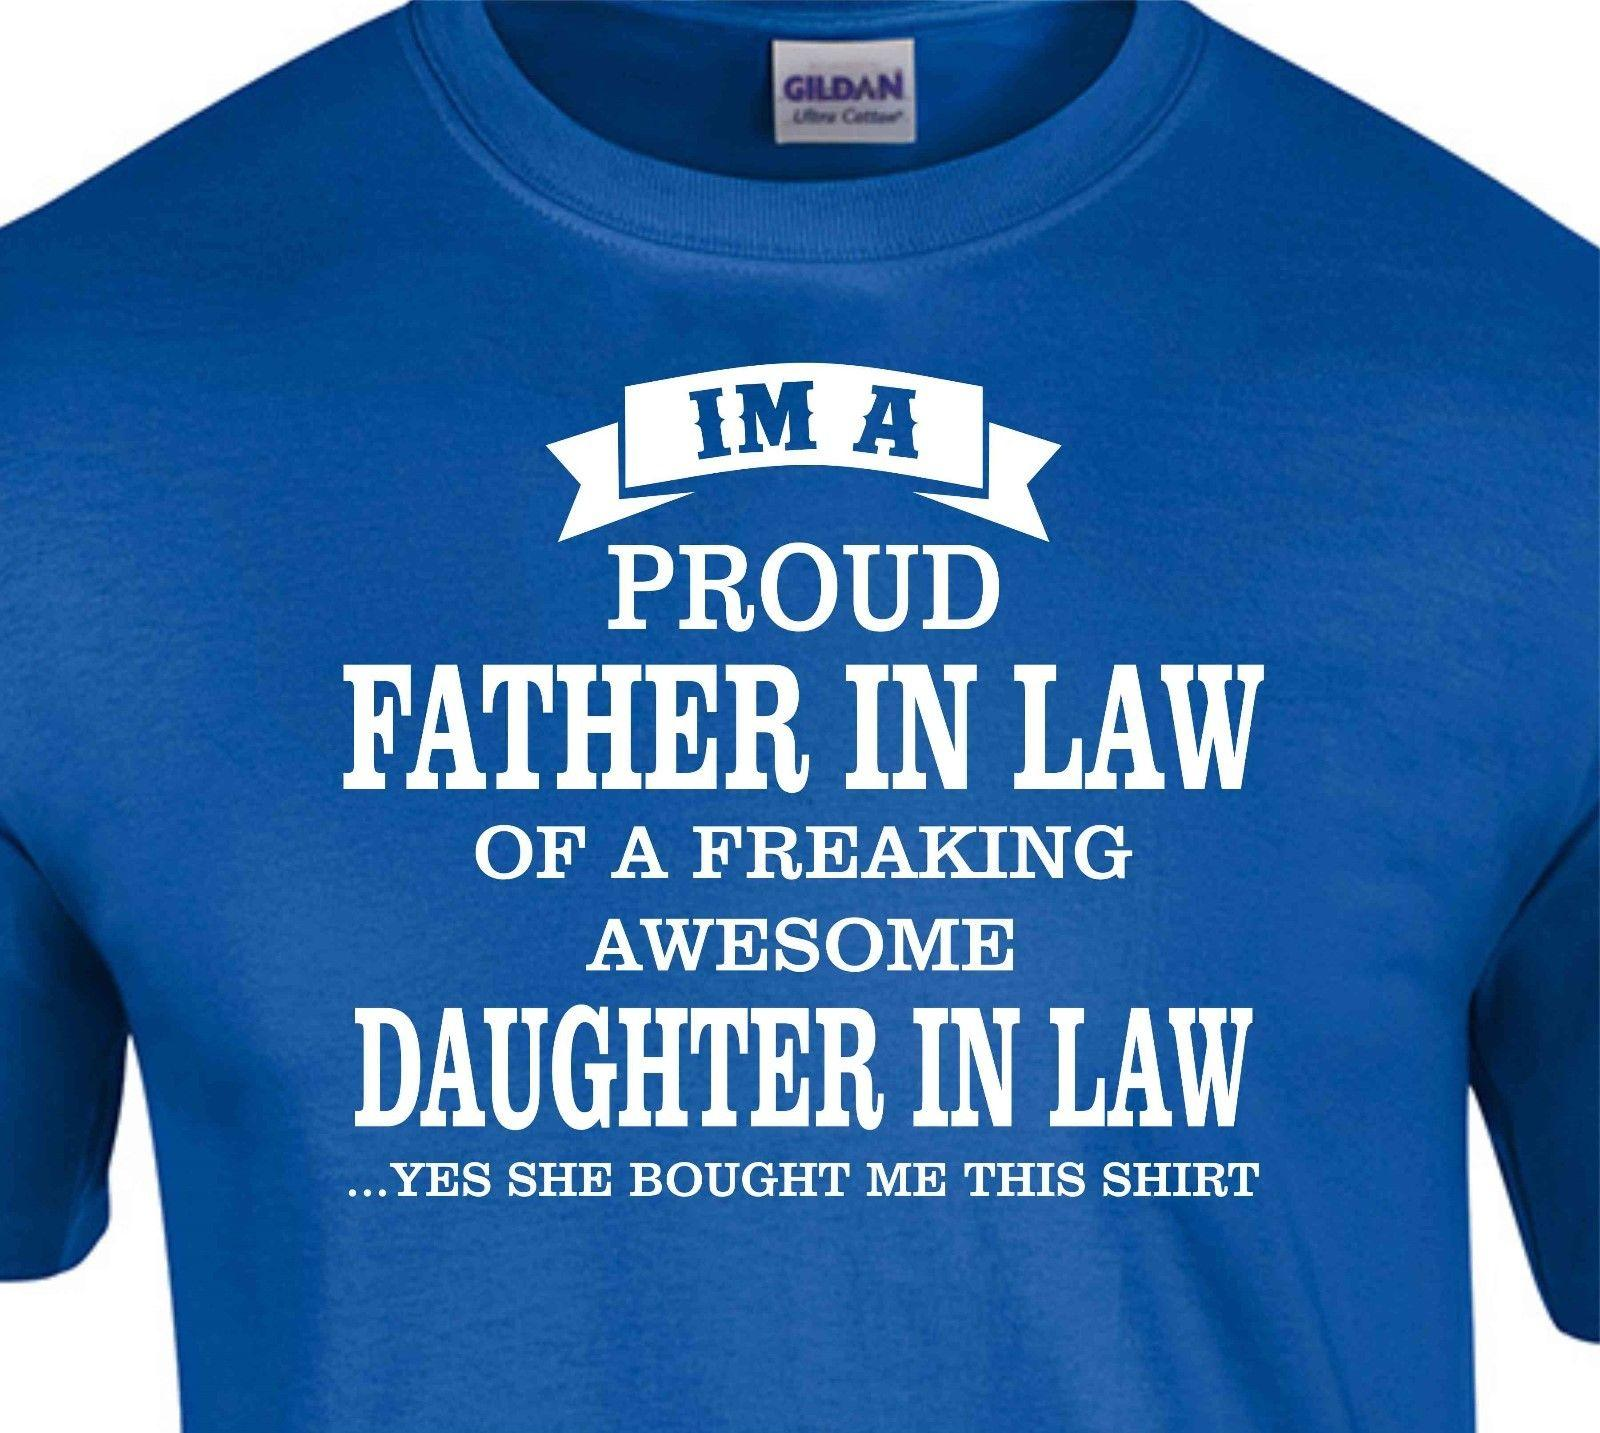 dbffd7ac I'M A Proud Father In Law Of A Freaking Awesome Daughter In Law T Shirt Tee  Shirts Design T Shirts Buy Online From Nolifeshirt, $11.01| DHgate.Com